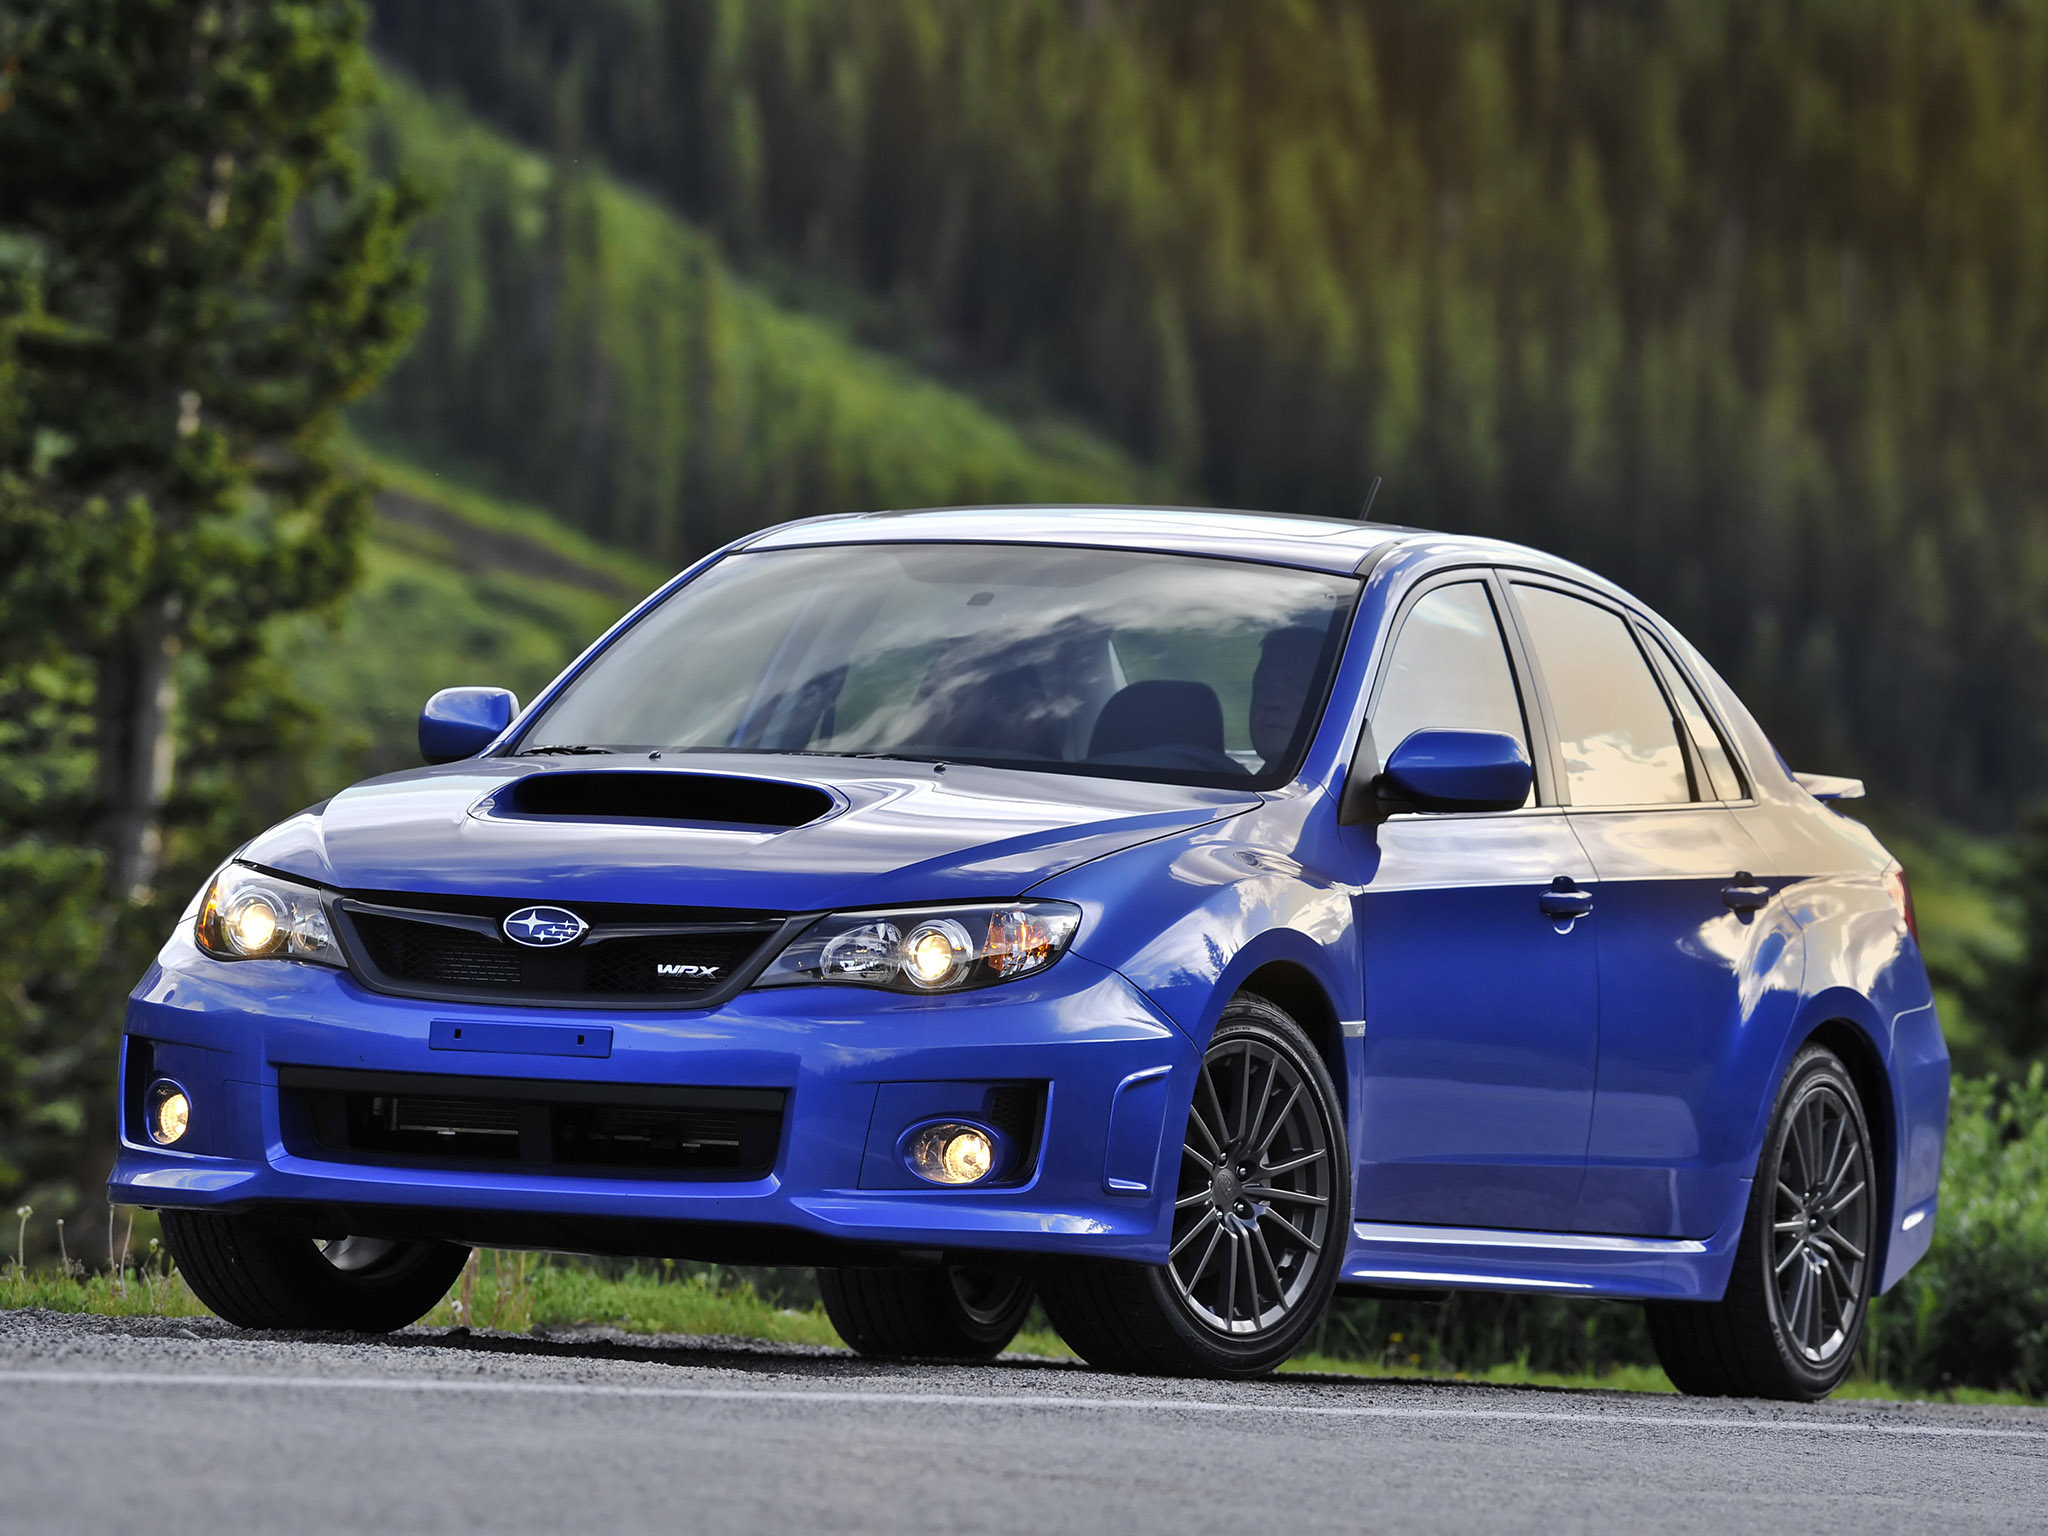 subaru impreza wrx sedan usa 2010 subaru impreza wrx sedan usa 2010 photo 09 car in pictures. Black Bedroom Furniture Sets. Home Design Ideas